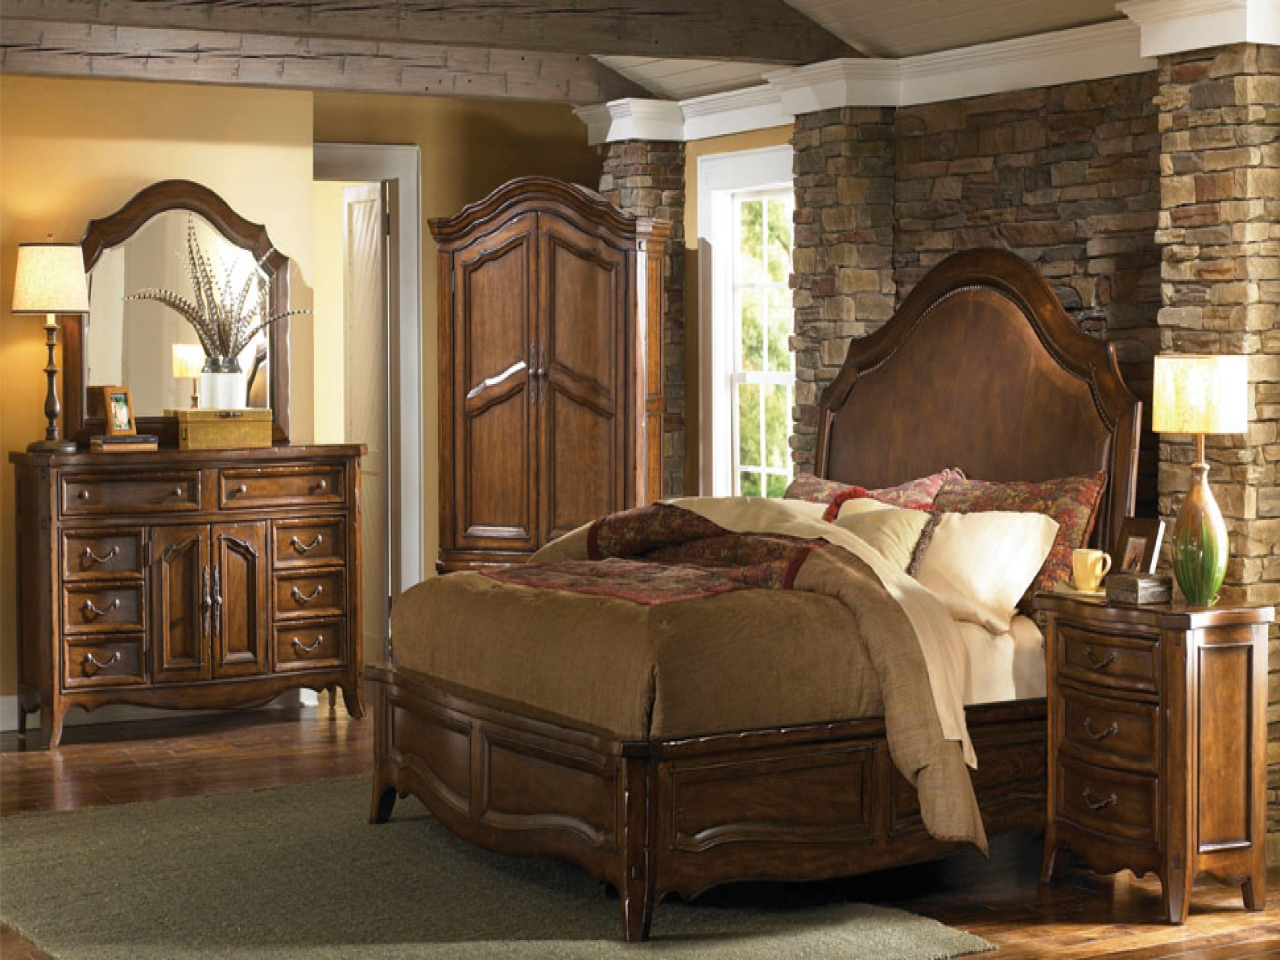 How to Know the Quality of Wooden Furniture